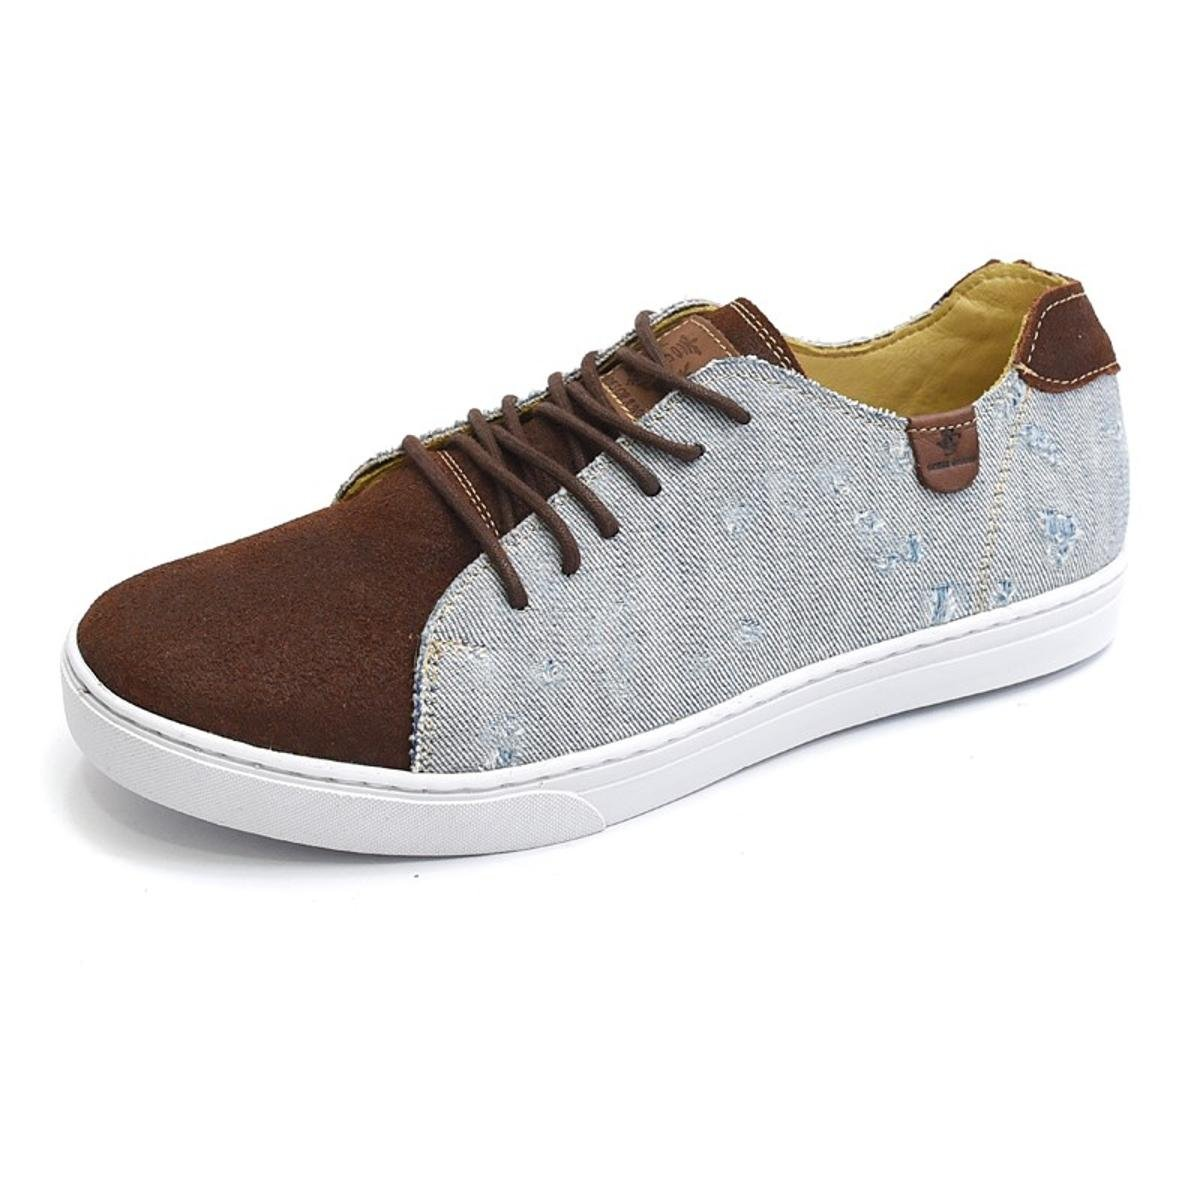 Sapatênis Shoes Grand Destroyed Masculino - Marrom